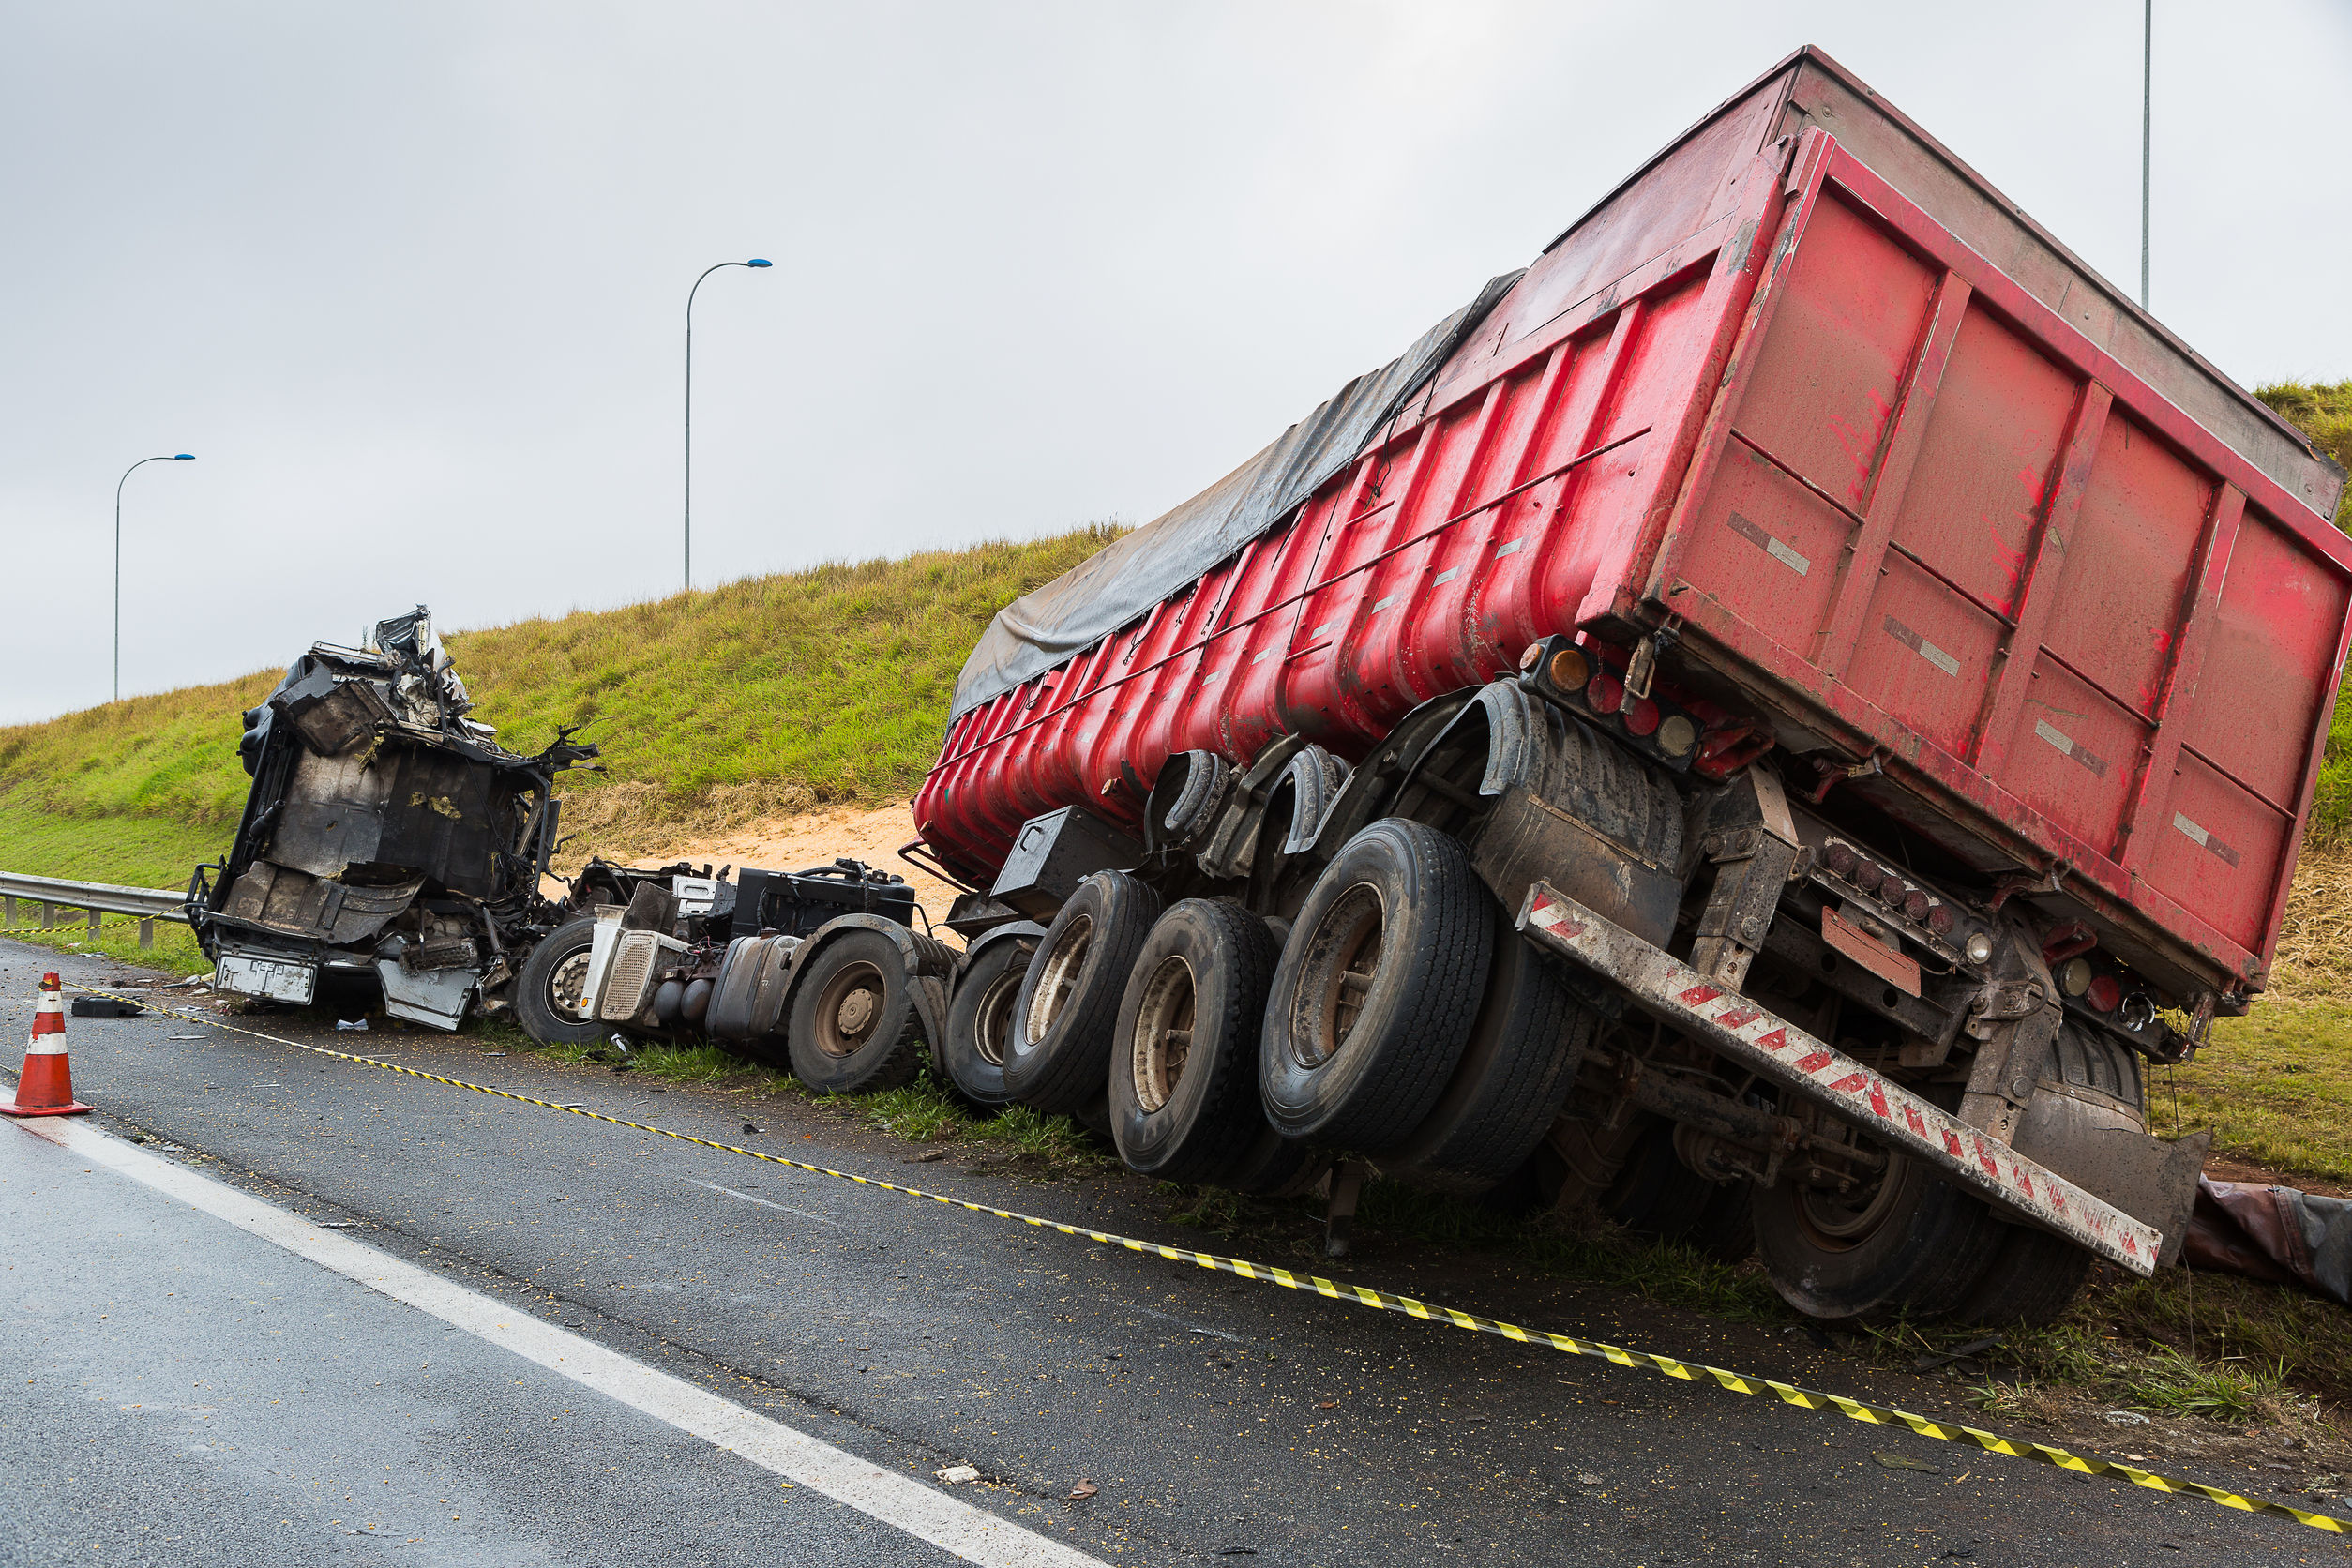 Houston Truck Accident Lawyer | Thurlowlaw & Associates